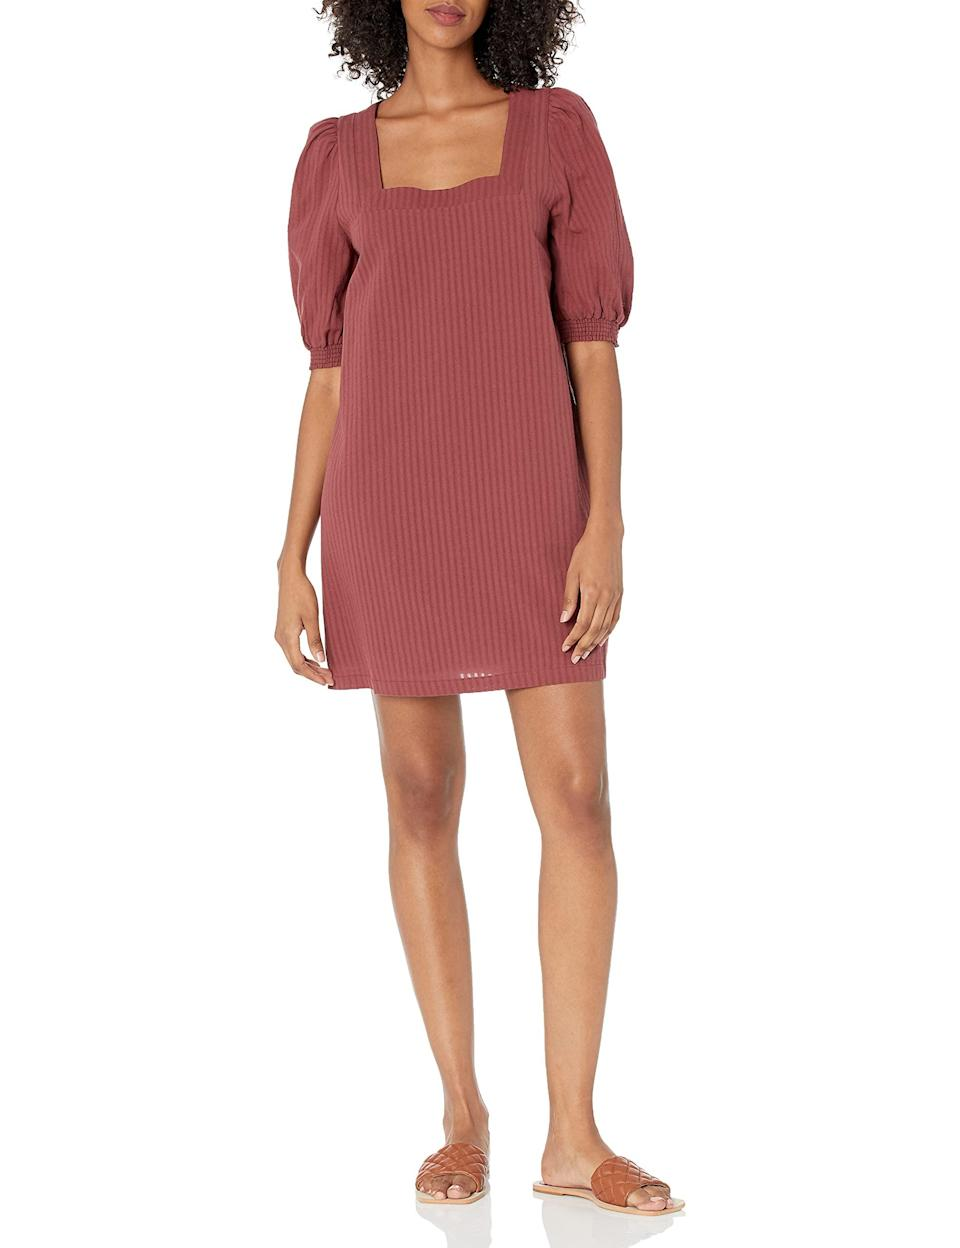 """<h2>Puff Sleeve Dresses</h2><br>These statement-sleeved frocks are easily dressed down with your favorite pair of sneakers or dressed up with heels or boots. <br><br><strong>BB Dakota by Steve Madden</strong> Truly Madly Deeply Dress, $, available at <a href=""""https://amzn.to/3CzwMyR"""" rel=""""nofollow noopener"""" target=""""_blank"""" data-ylk=""""slk:Amazon"""" class=""""link rapid-noclick-resp"""">Amazon</a>"""